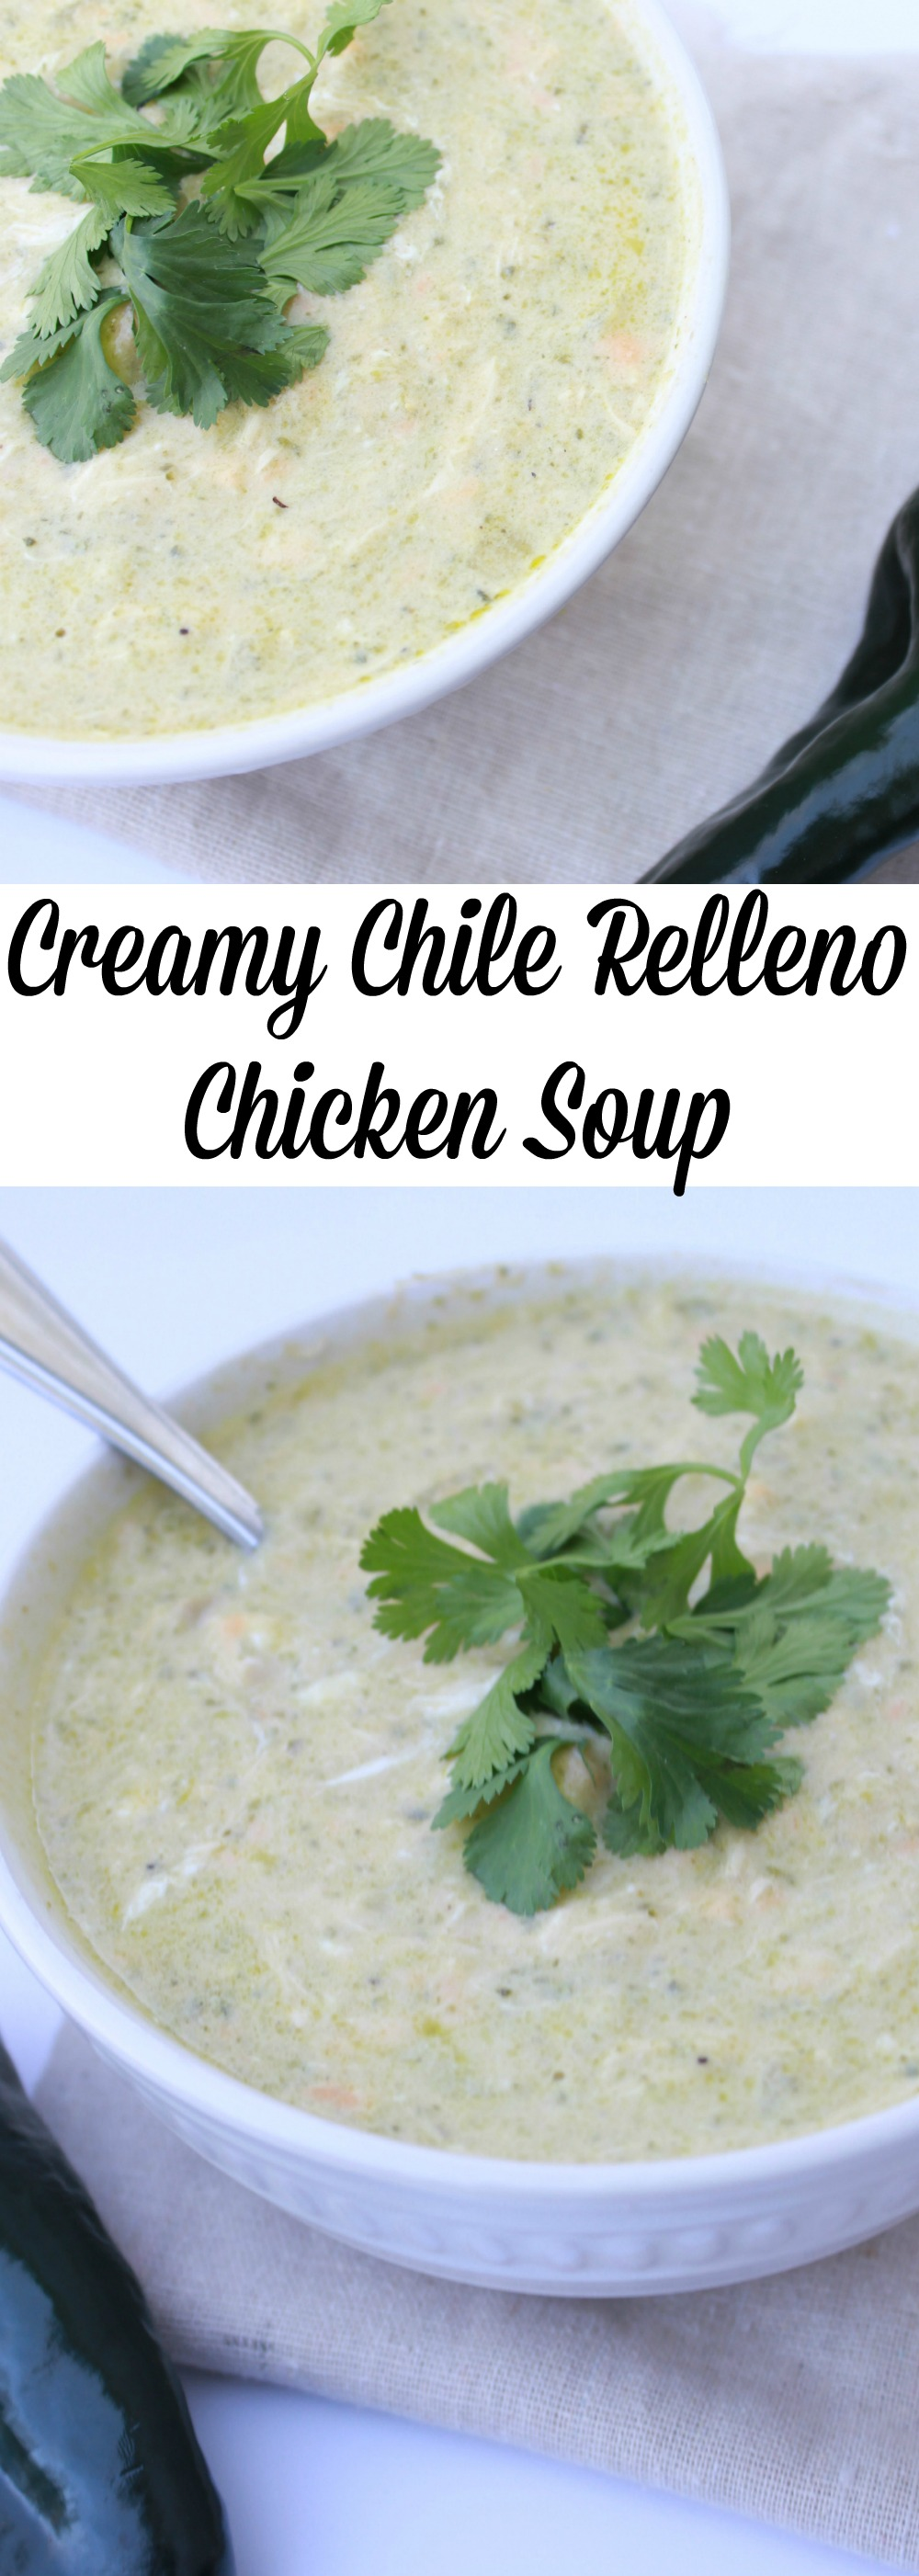 Creamy Chile Relleno Chicken Soup - Moms Without Answers